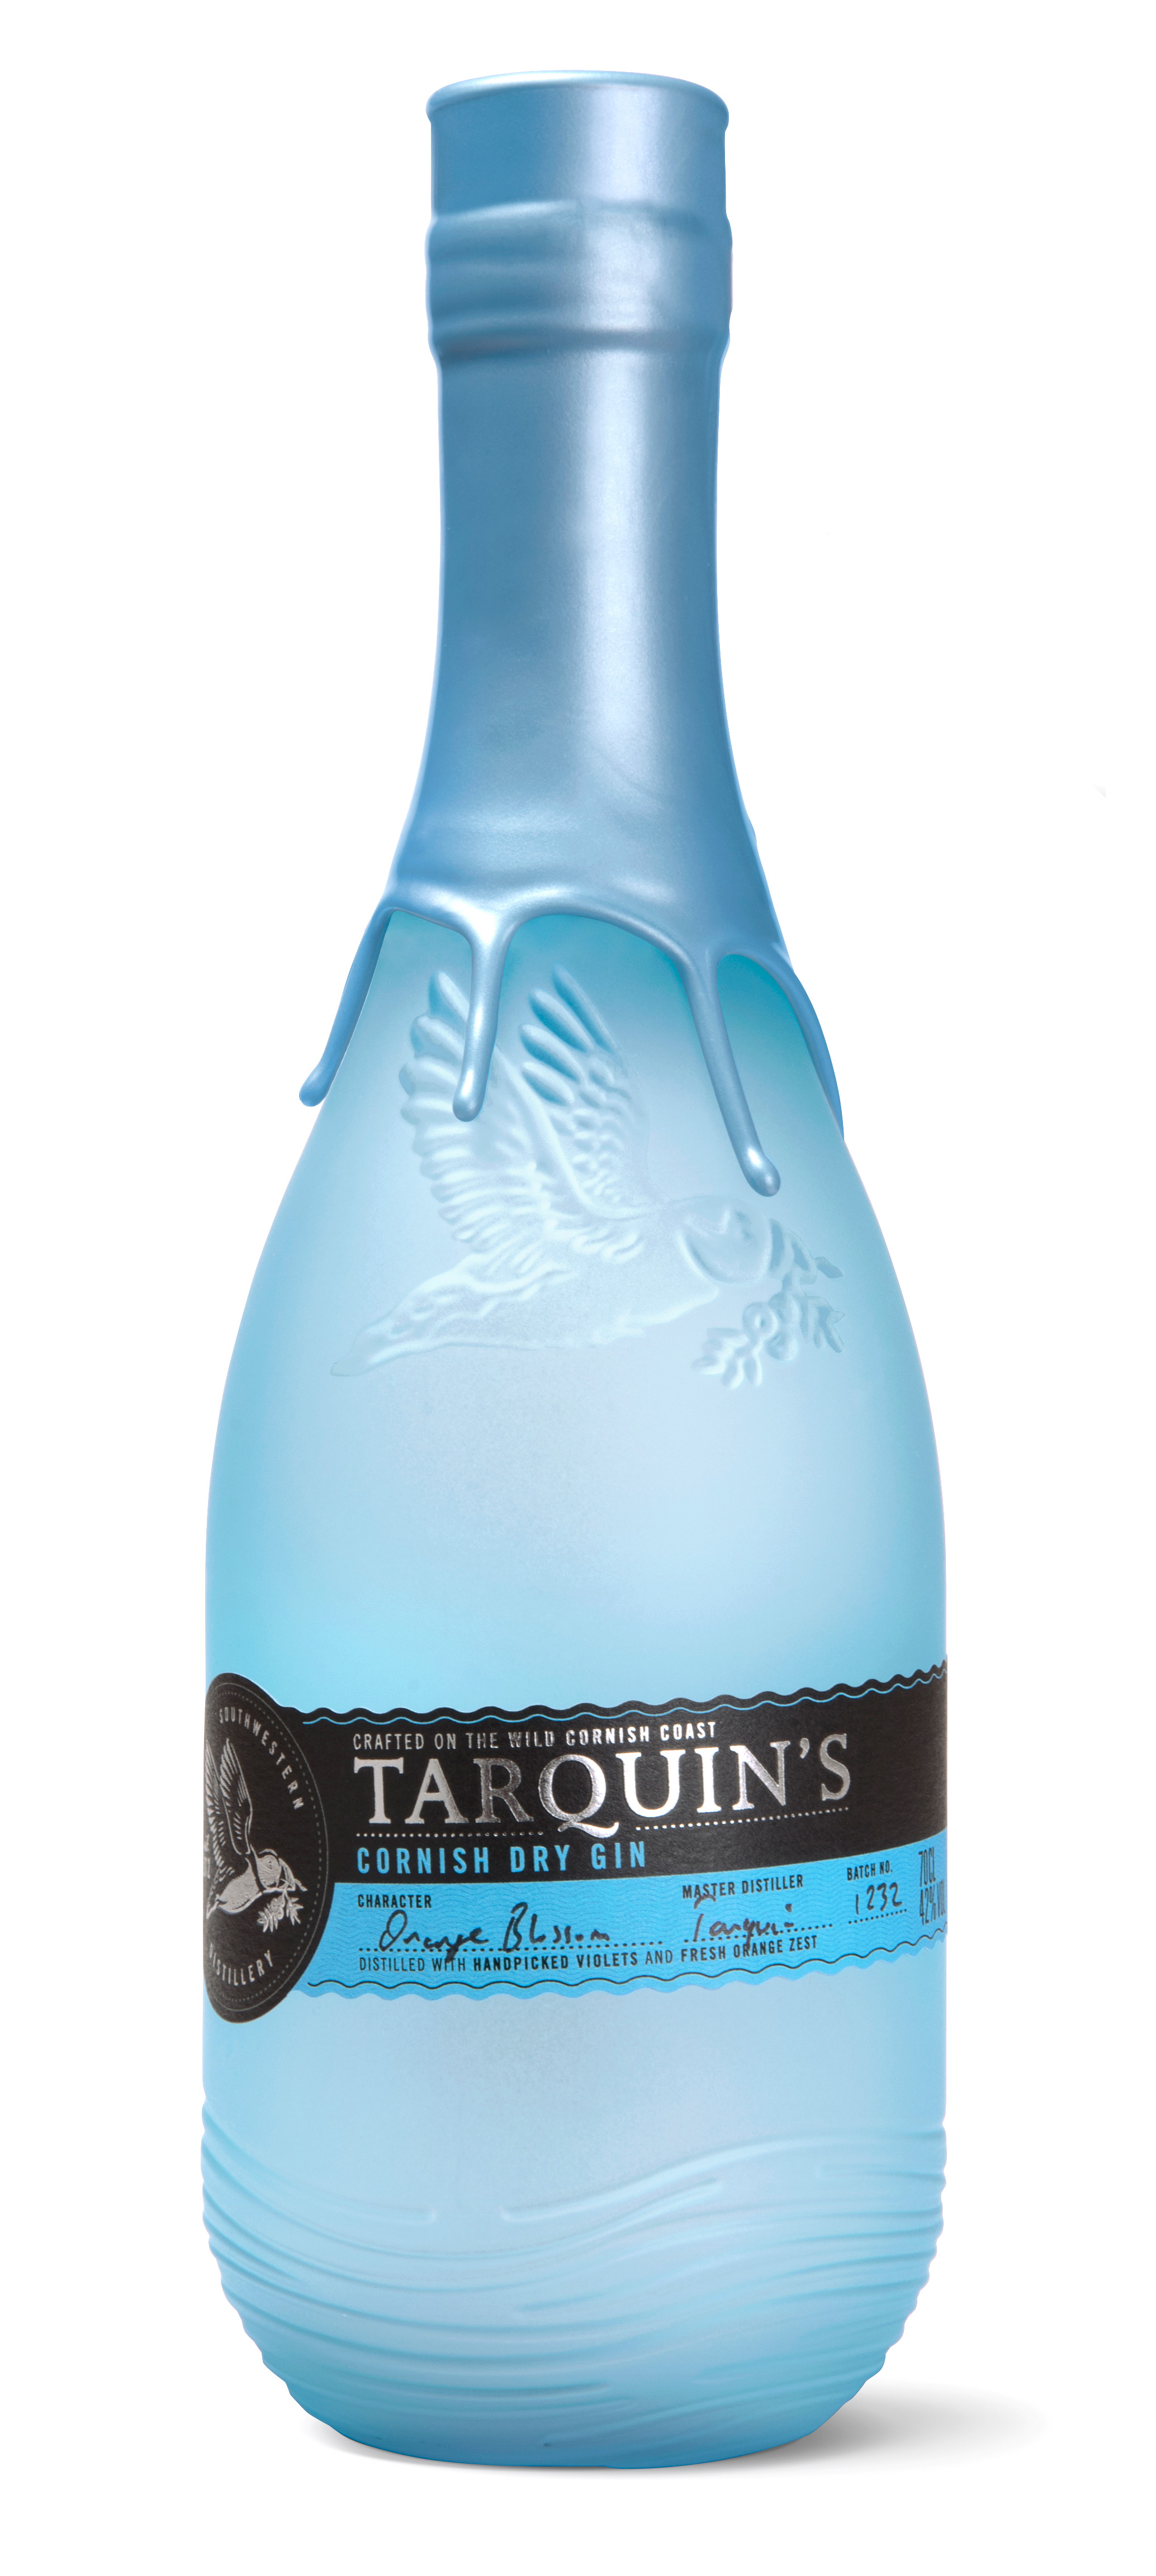 New 'Sea-Glass' Bottle Design for Tarquin's Cornish Gin by Buddy / World Brand & Packaging Design Society